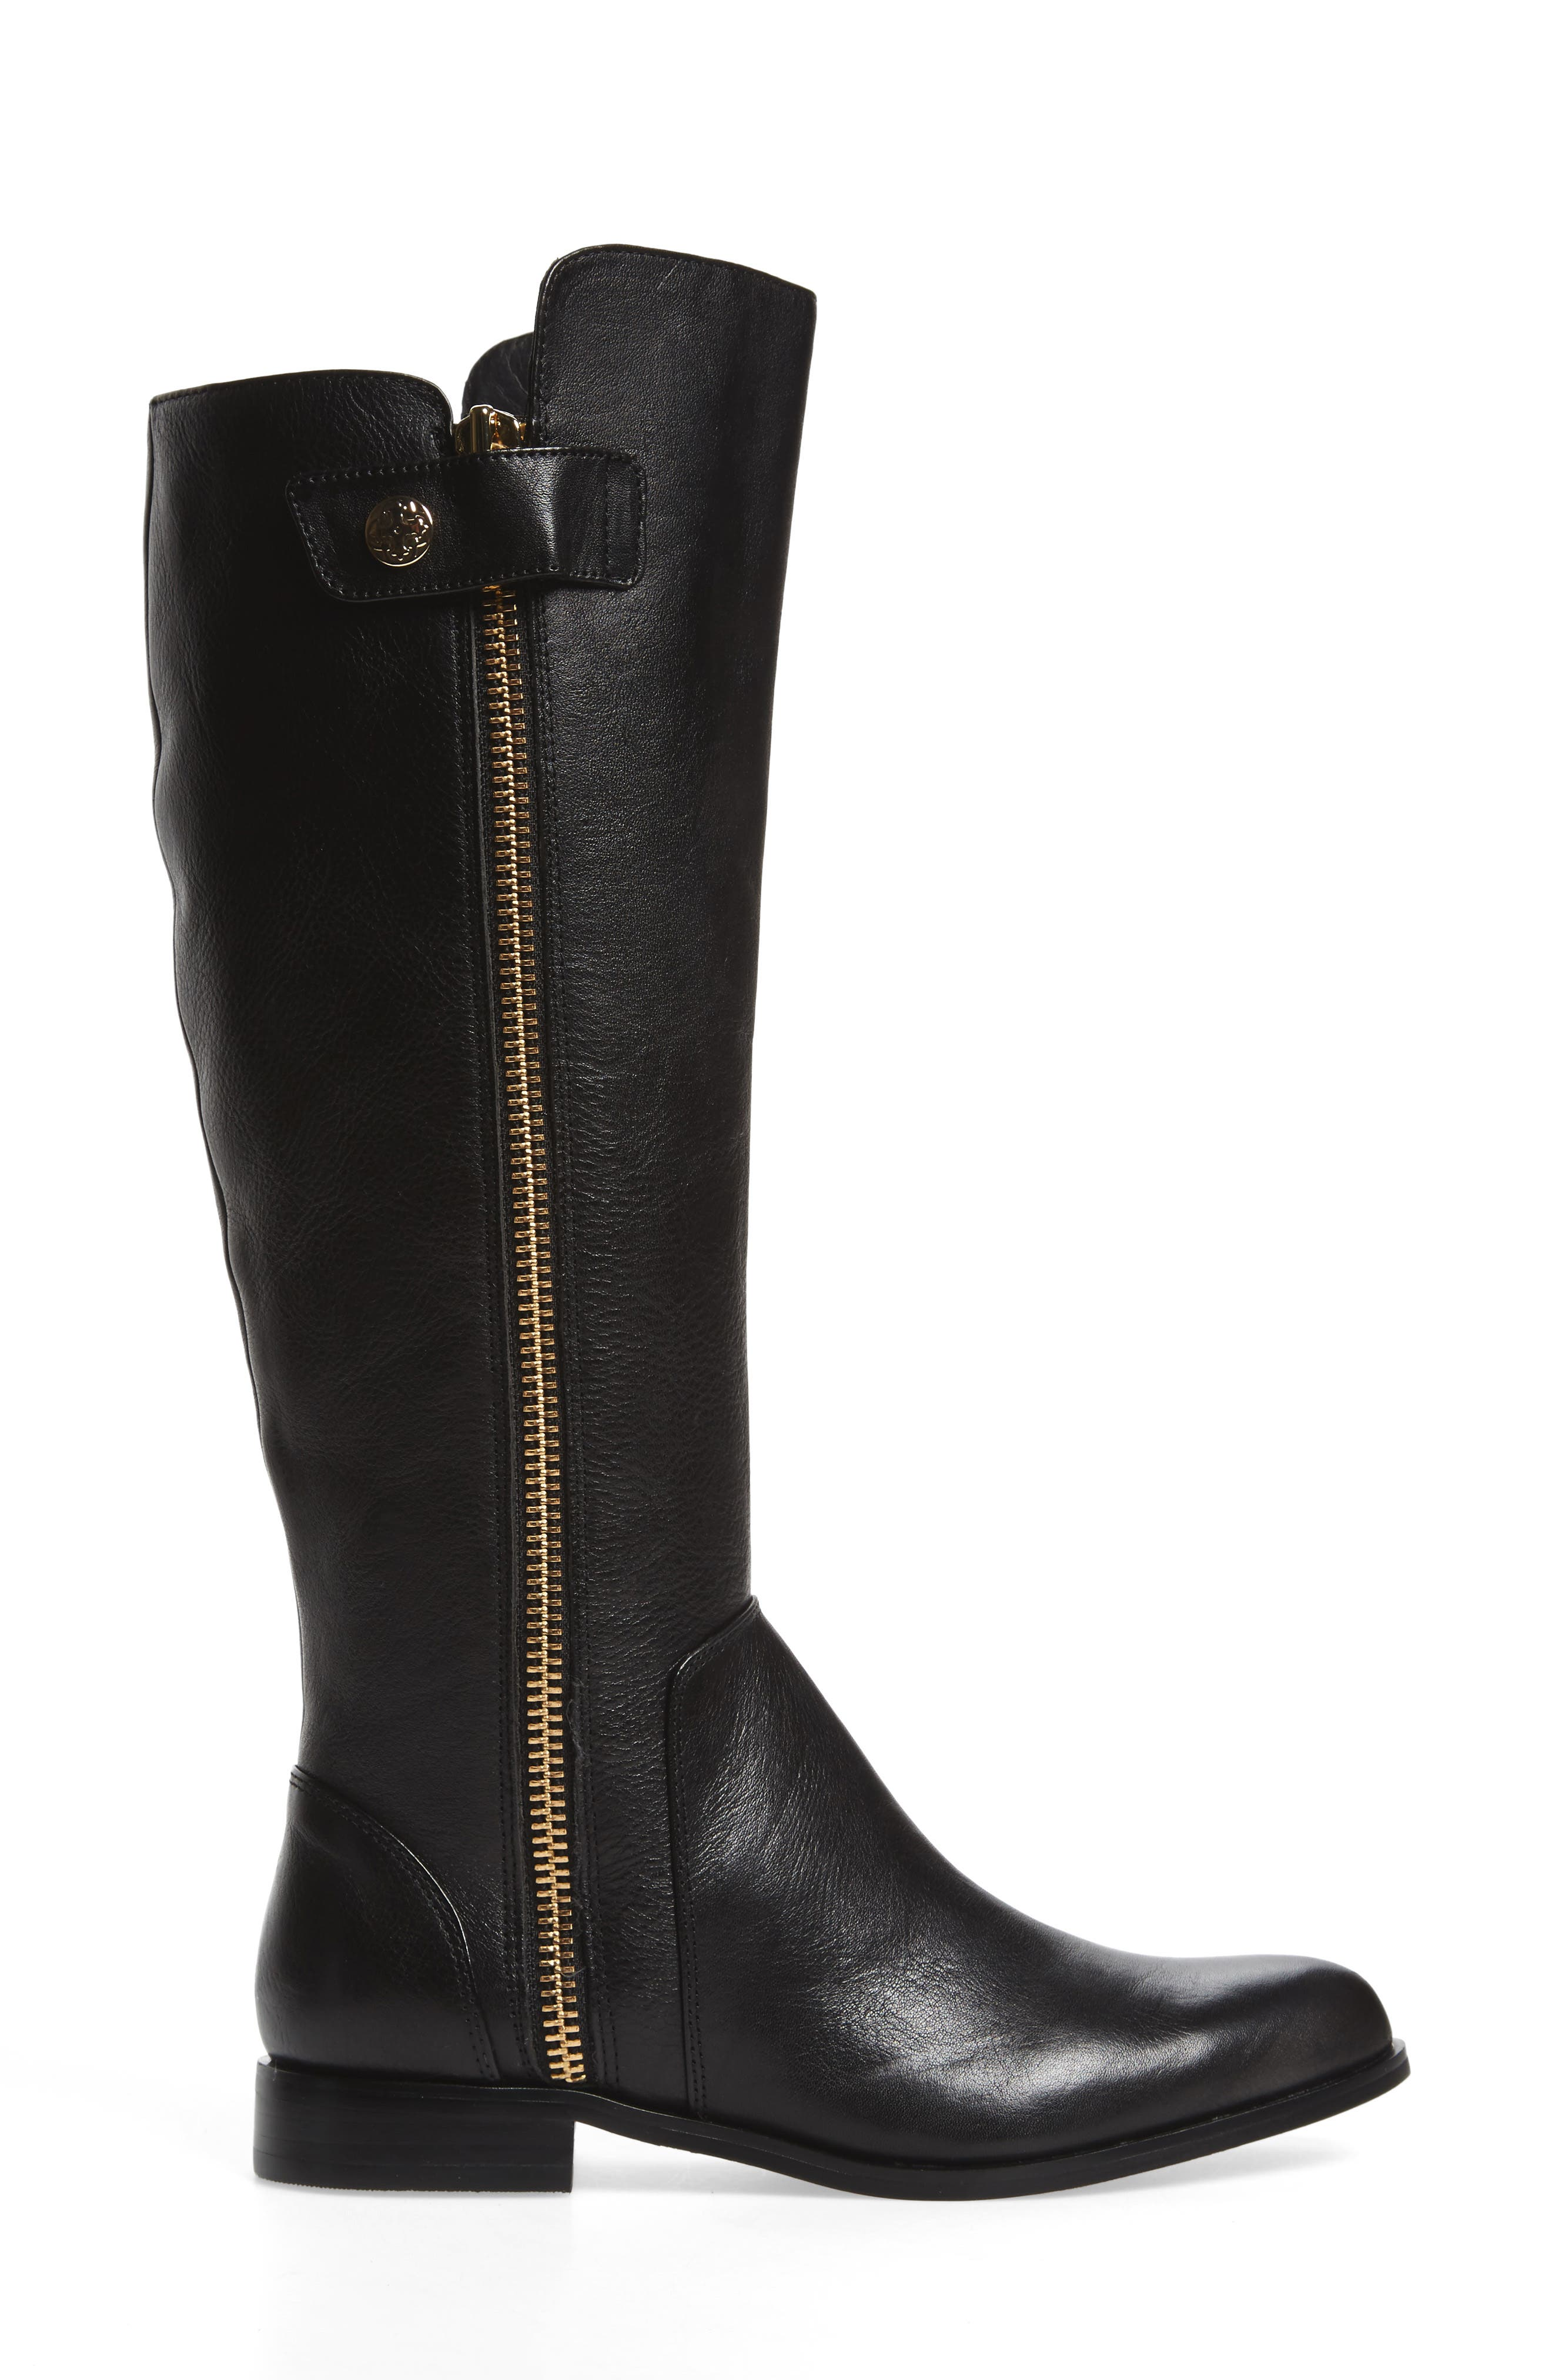 Melino Boot,                             Alternate thumbnail 3, color,                             Black Leather